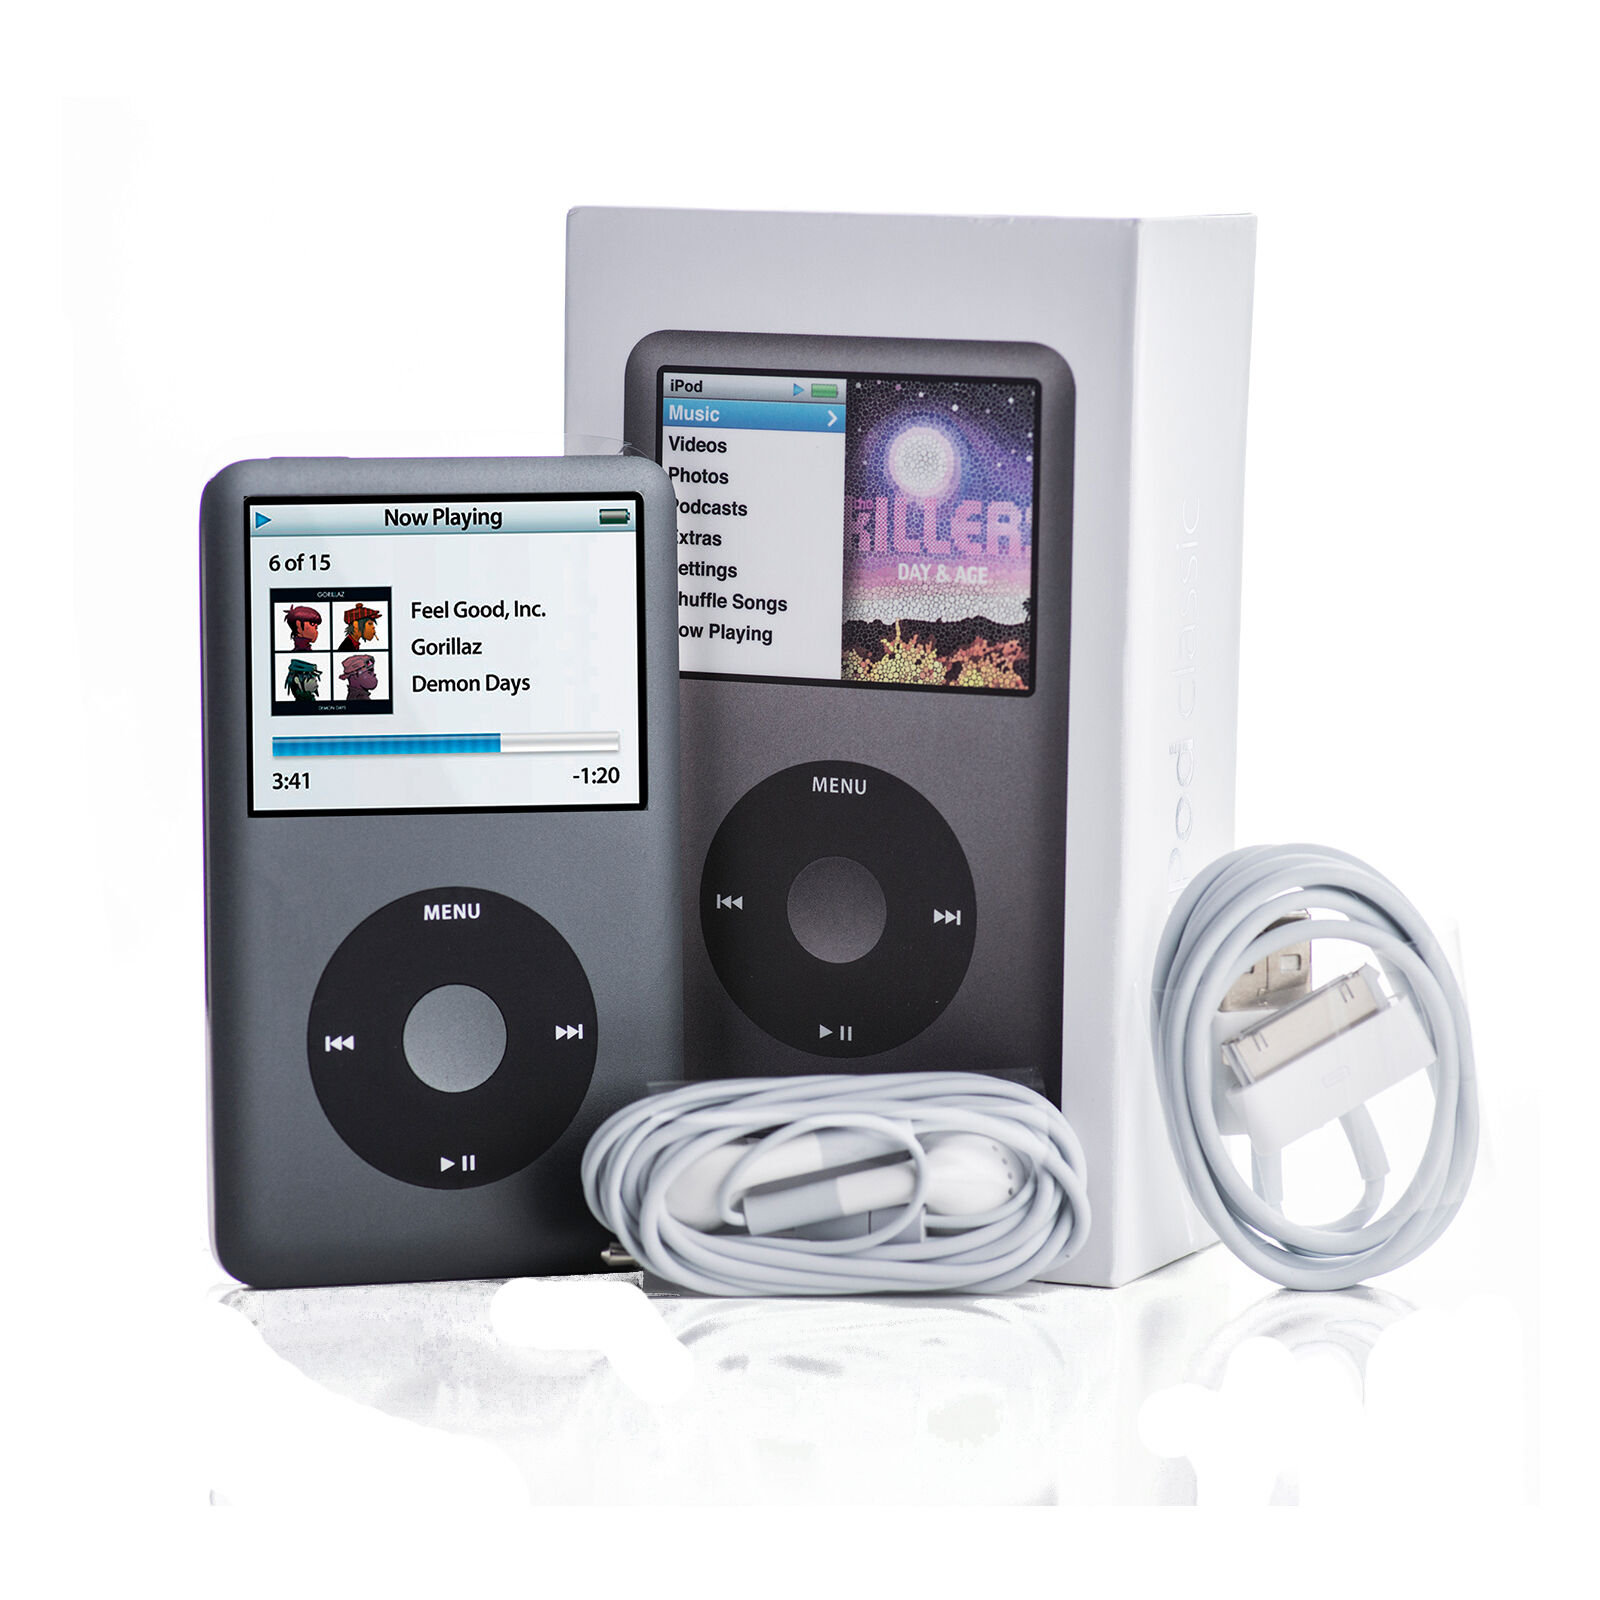 apple ipod classic 7th generation black 160gb mc297ll a mp3 player ebay. Black Bedroom Furniture Sets. Home Design Ideas